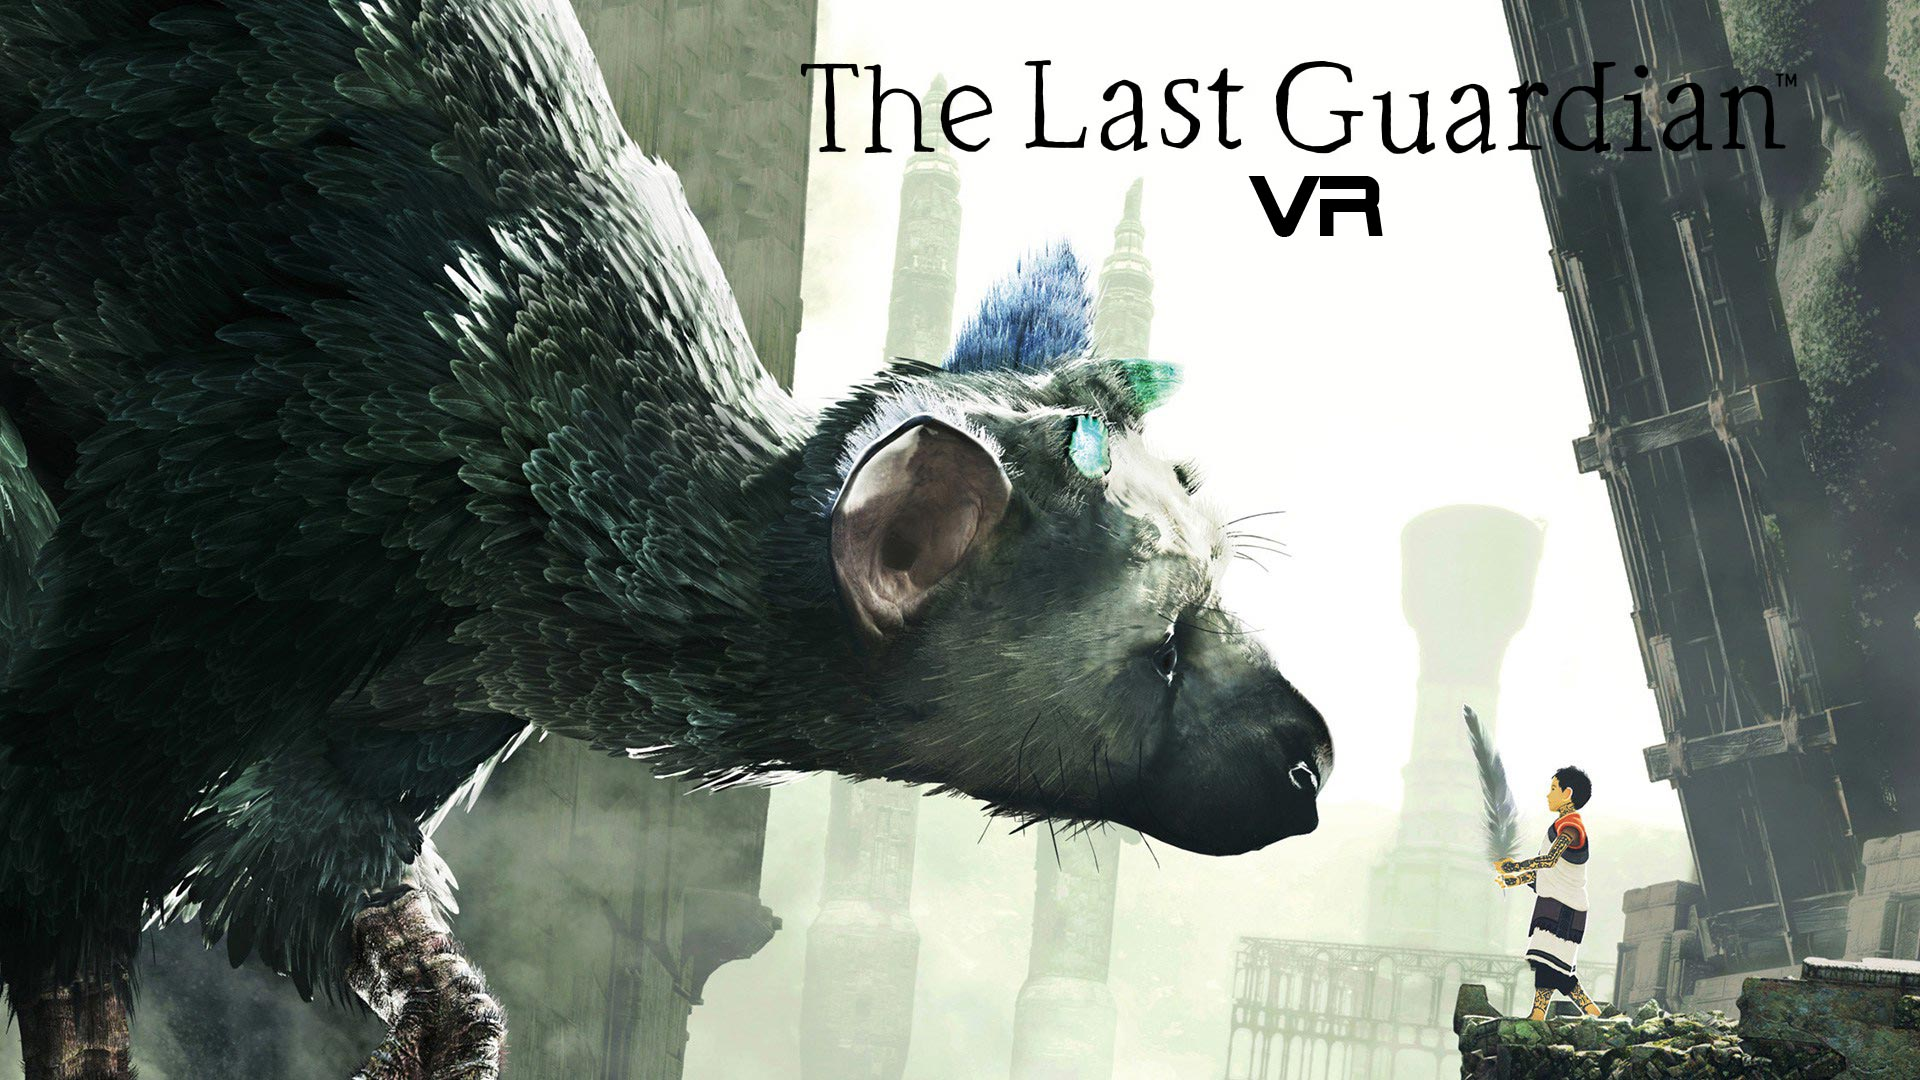 The Last Guardian VR Vr4PLAYER